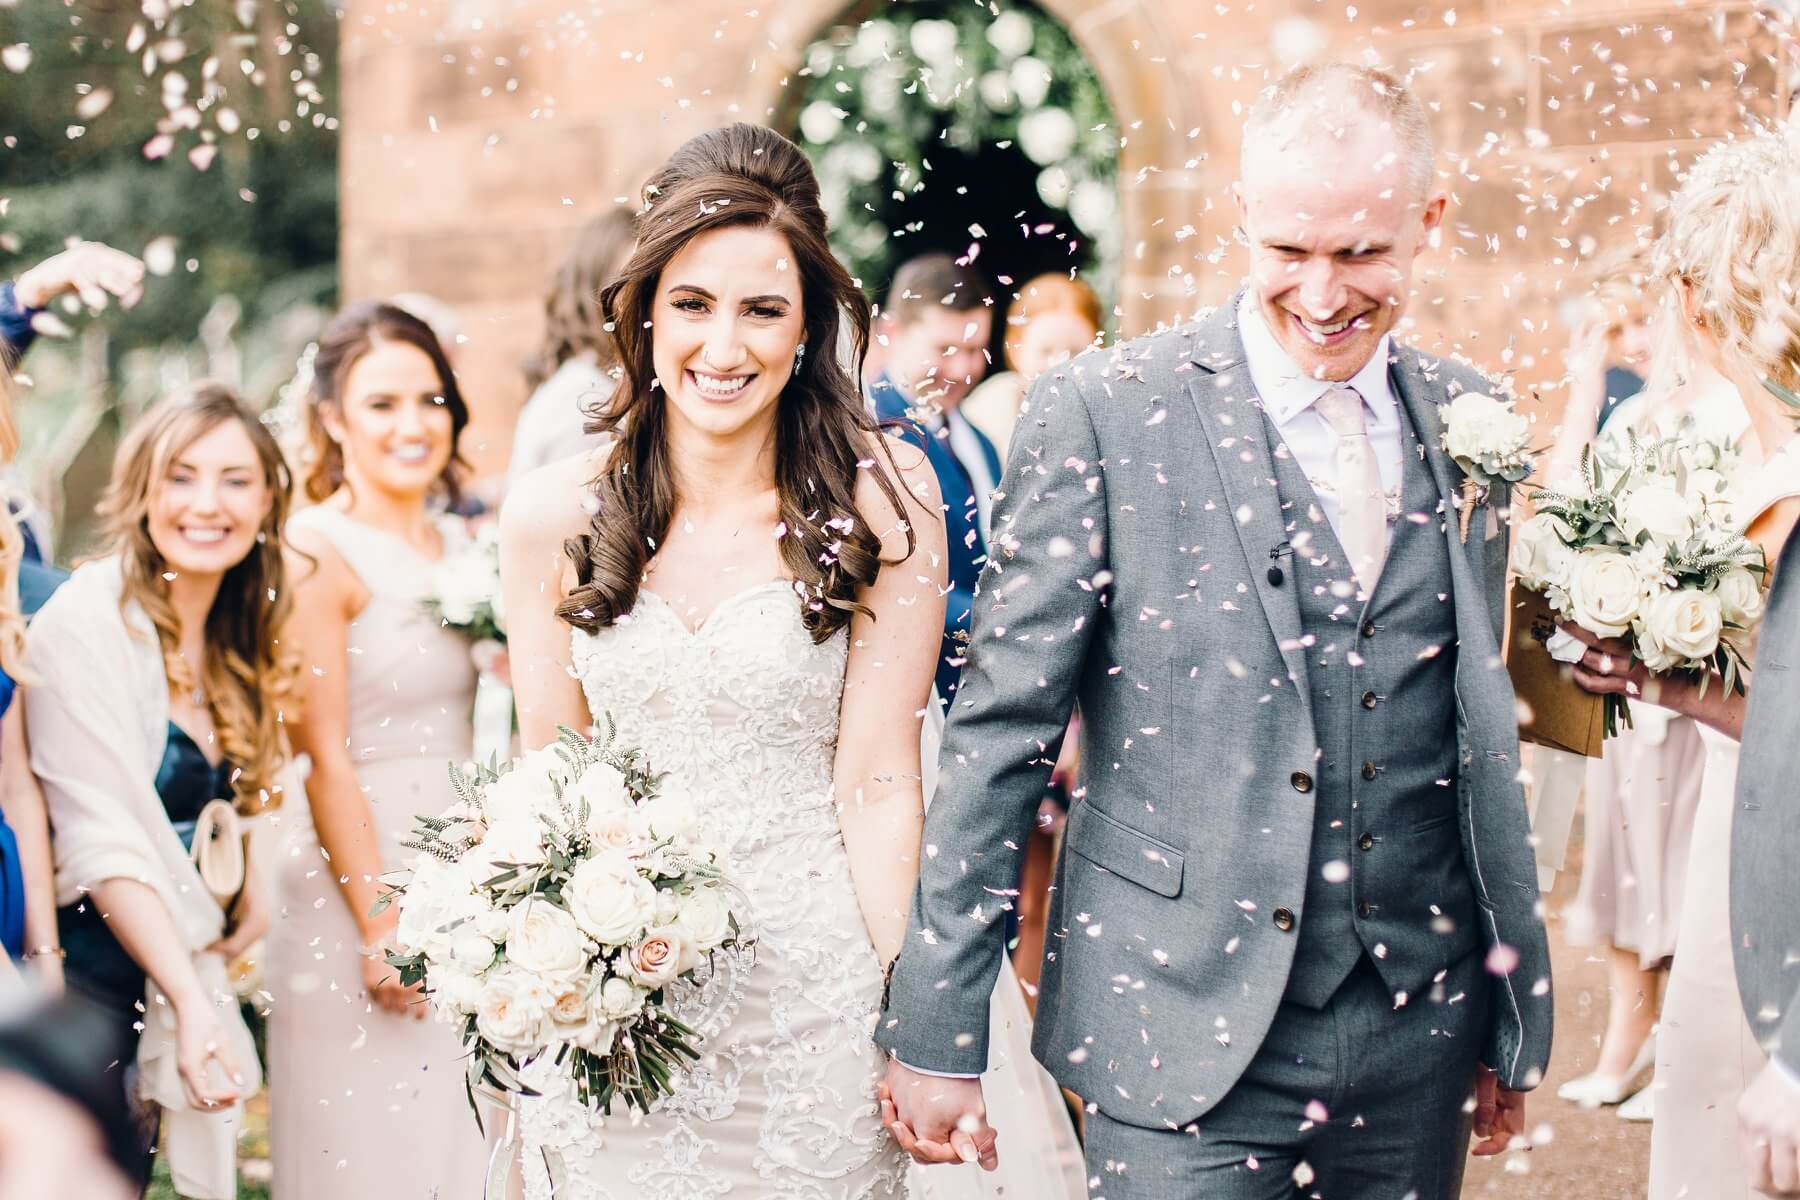 Confetti Wedding Insurance: How To Get The Perfect Confetti Photo On Your Big Day